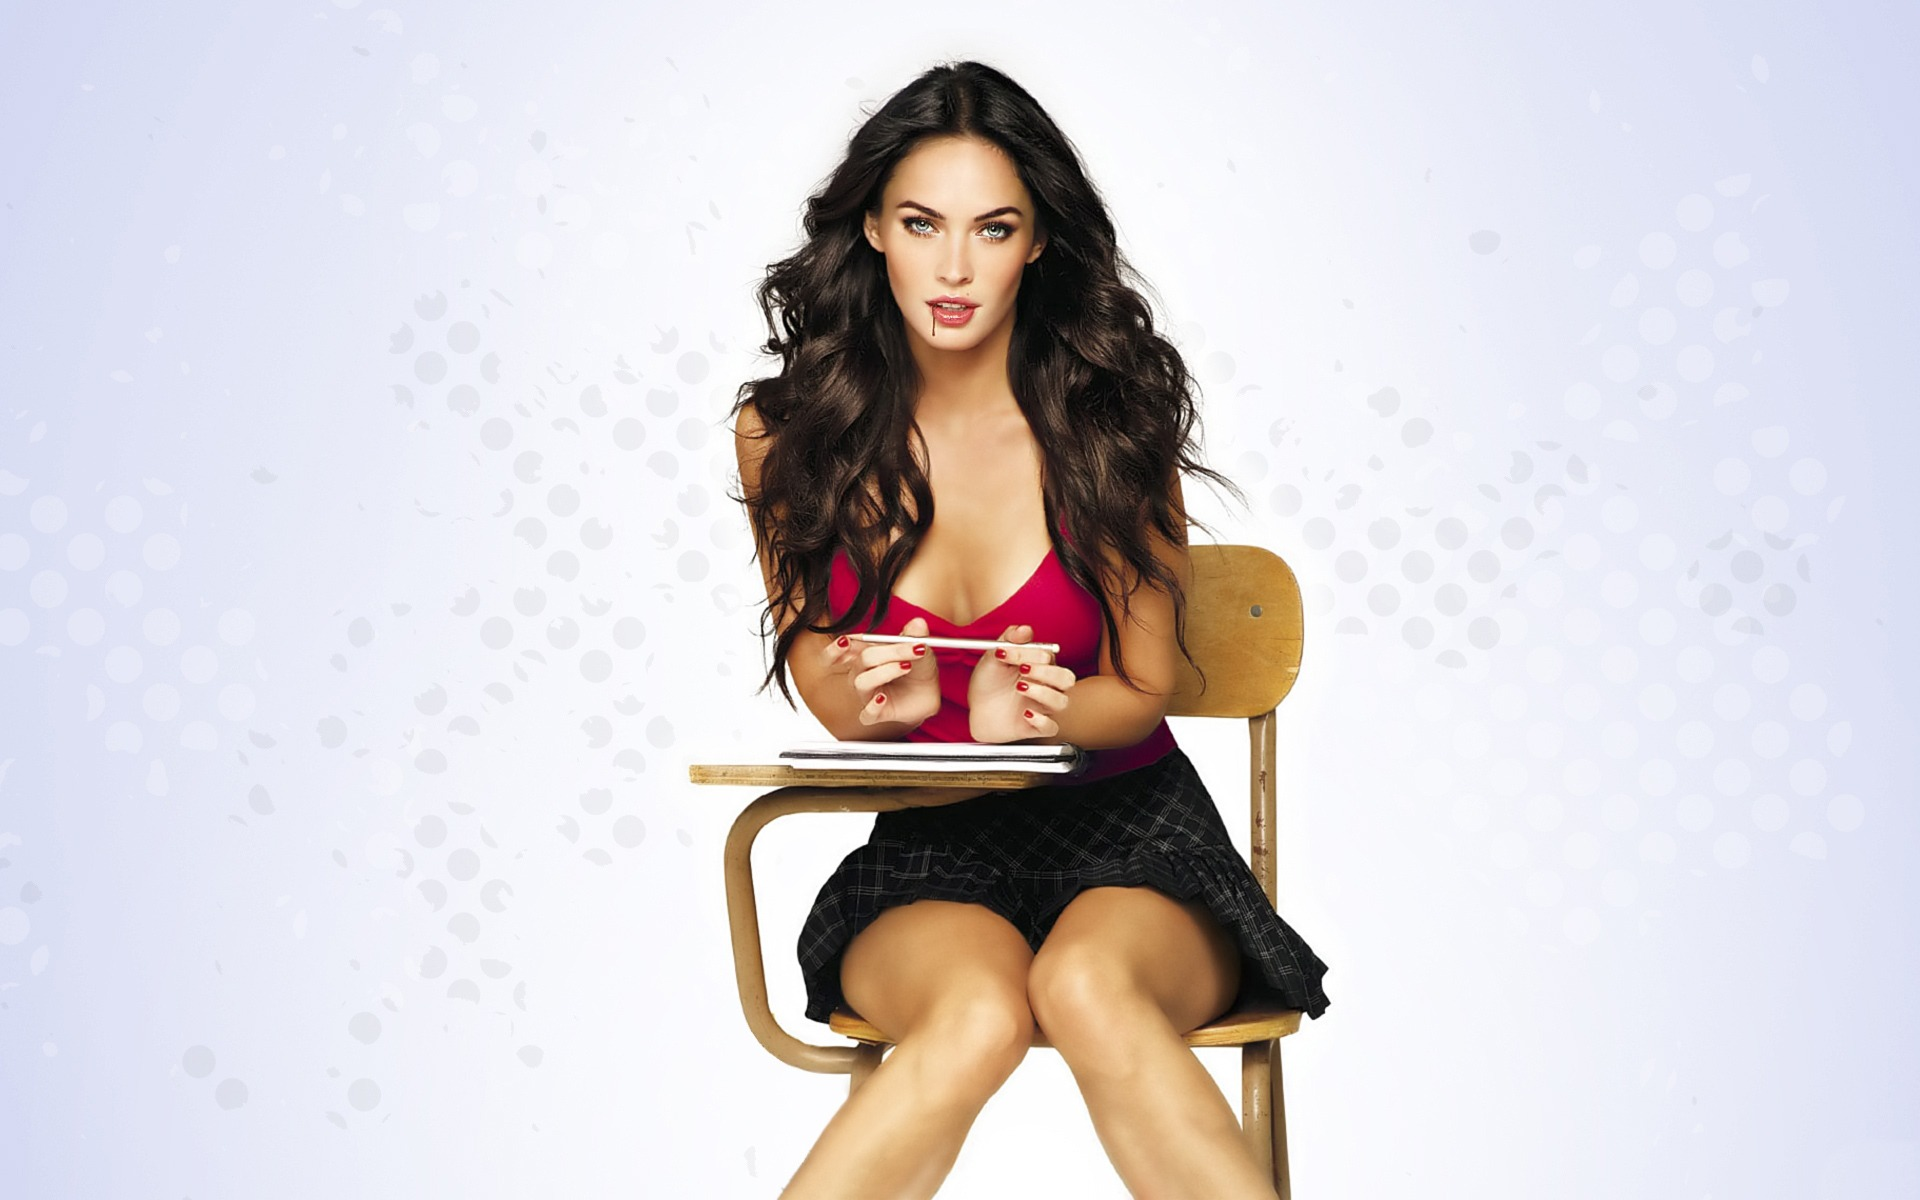 Sexy wallpaper megan fox wallpapers for free download about 3049 megan fox vampire wallpaper megan fox female celebrities voltagebd Images